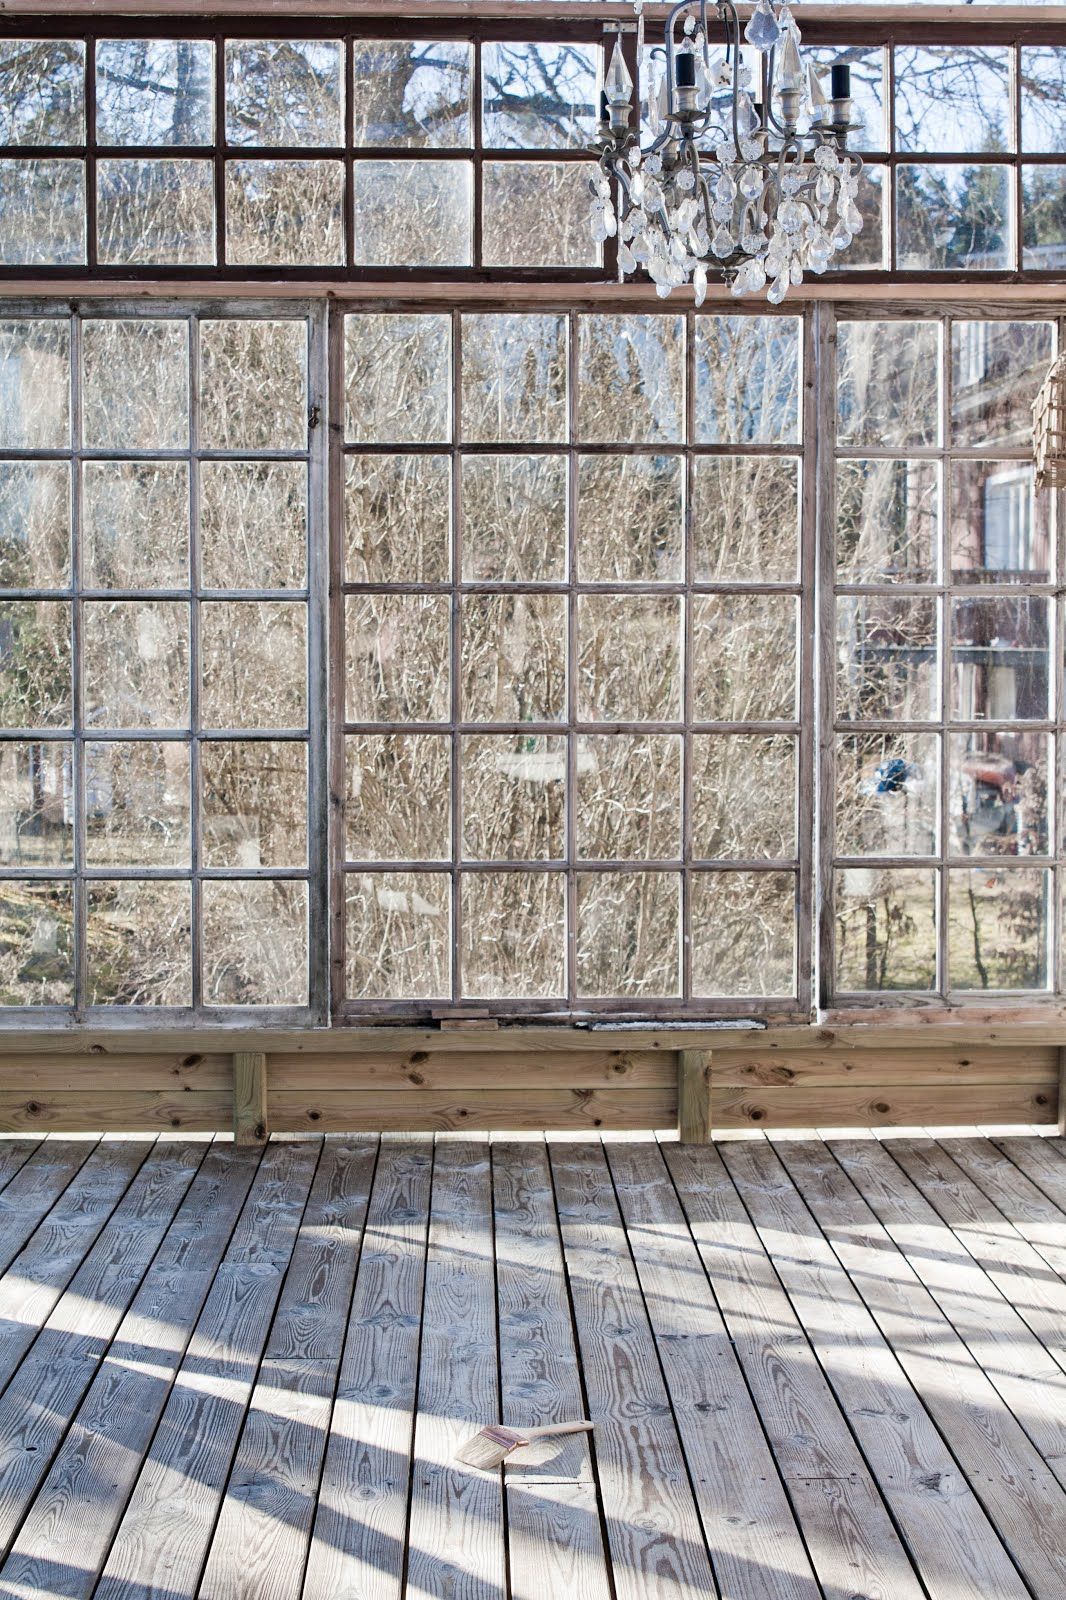 Window ideas for a sunroom  pin by sarah wiegersma on house and garden  pinterest  chandeliers